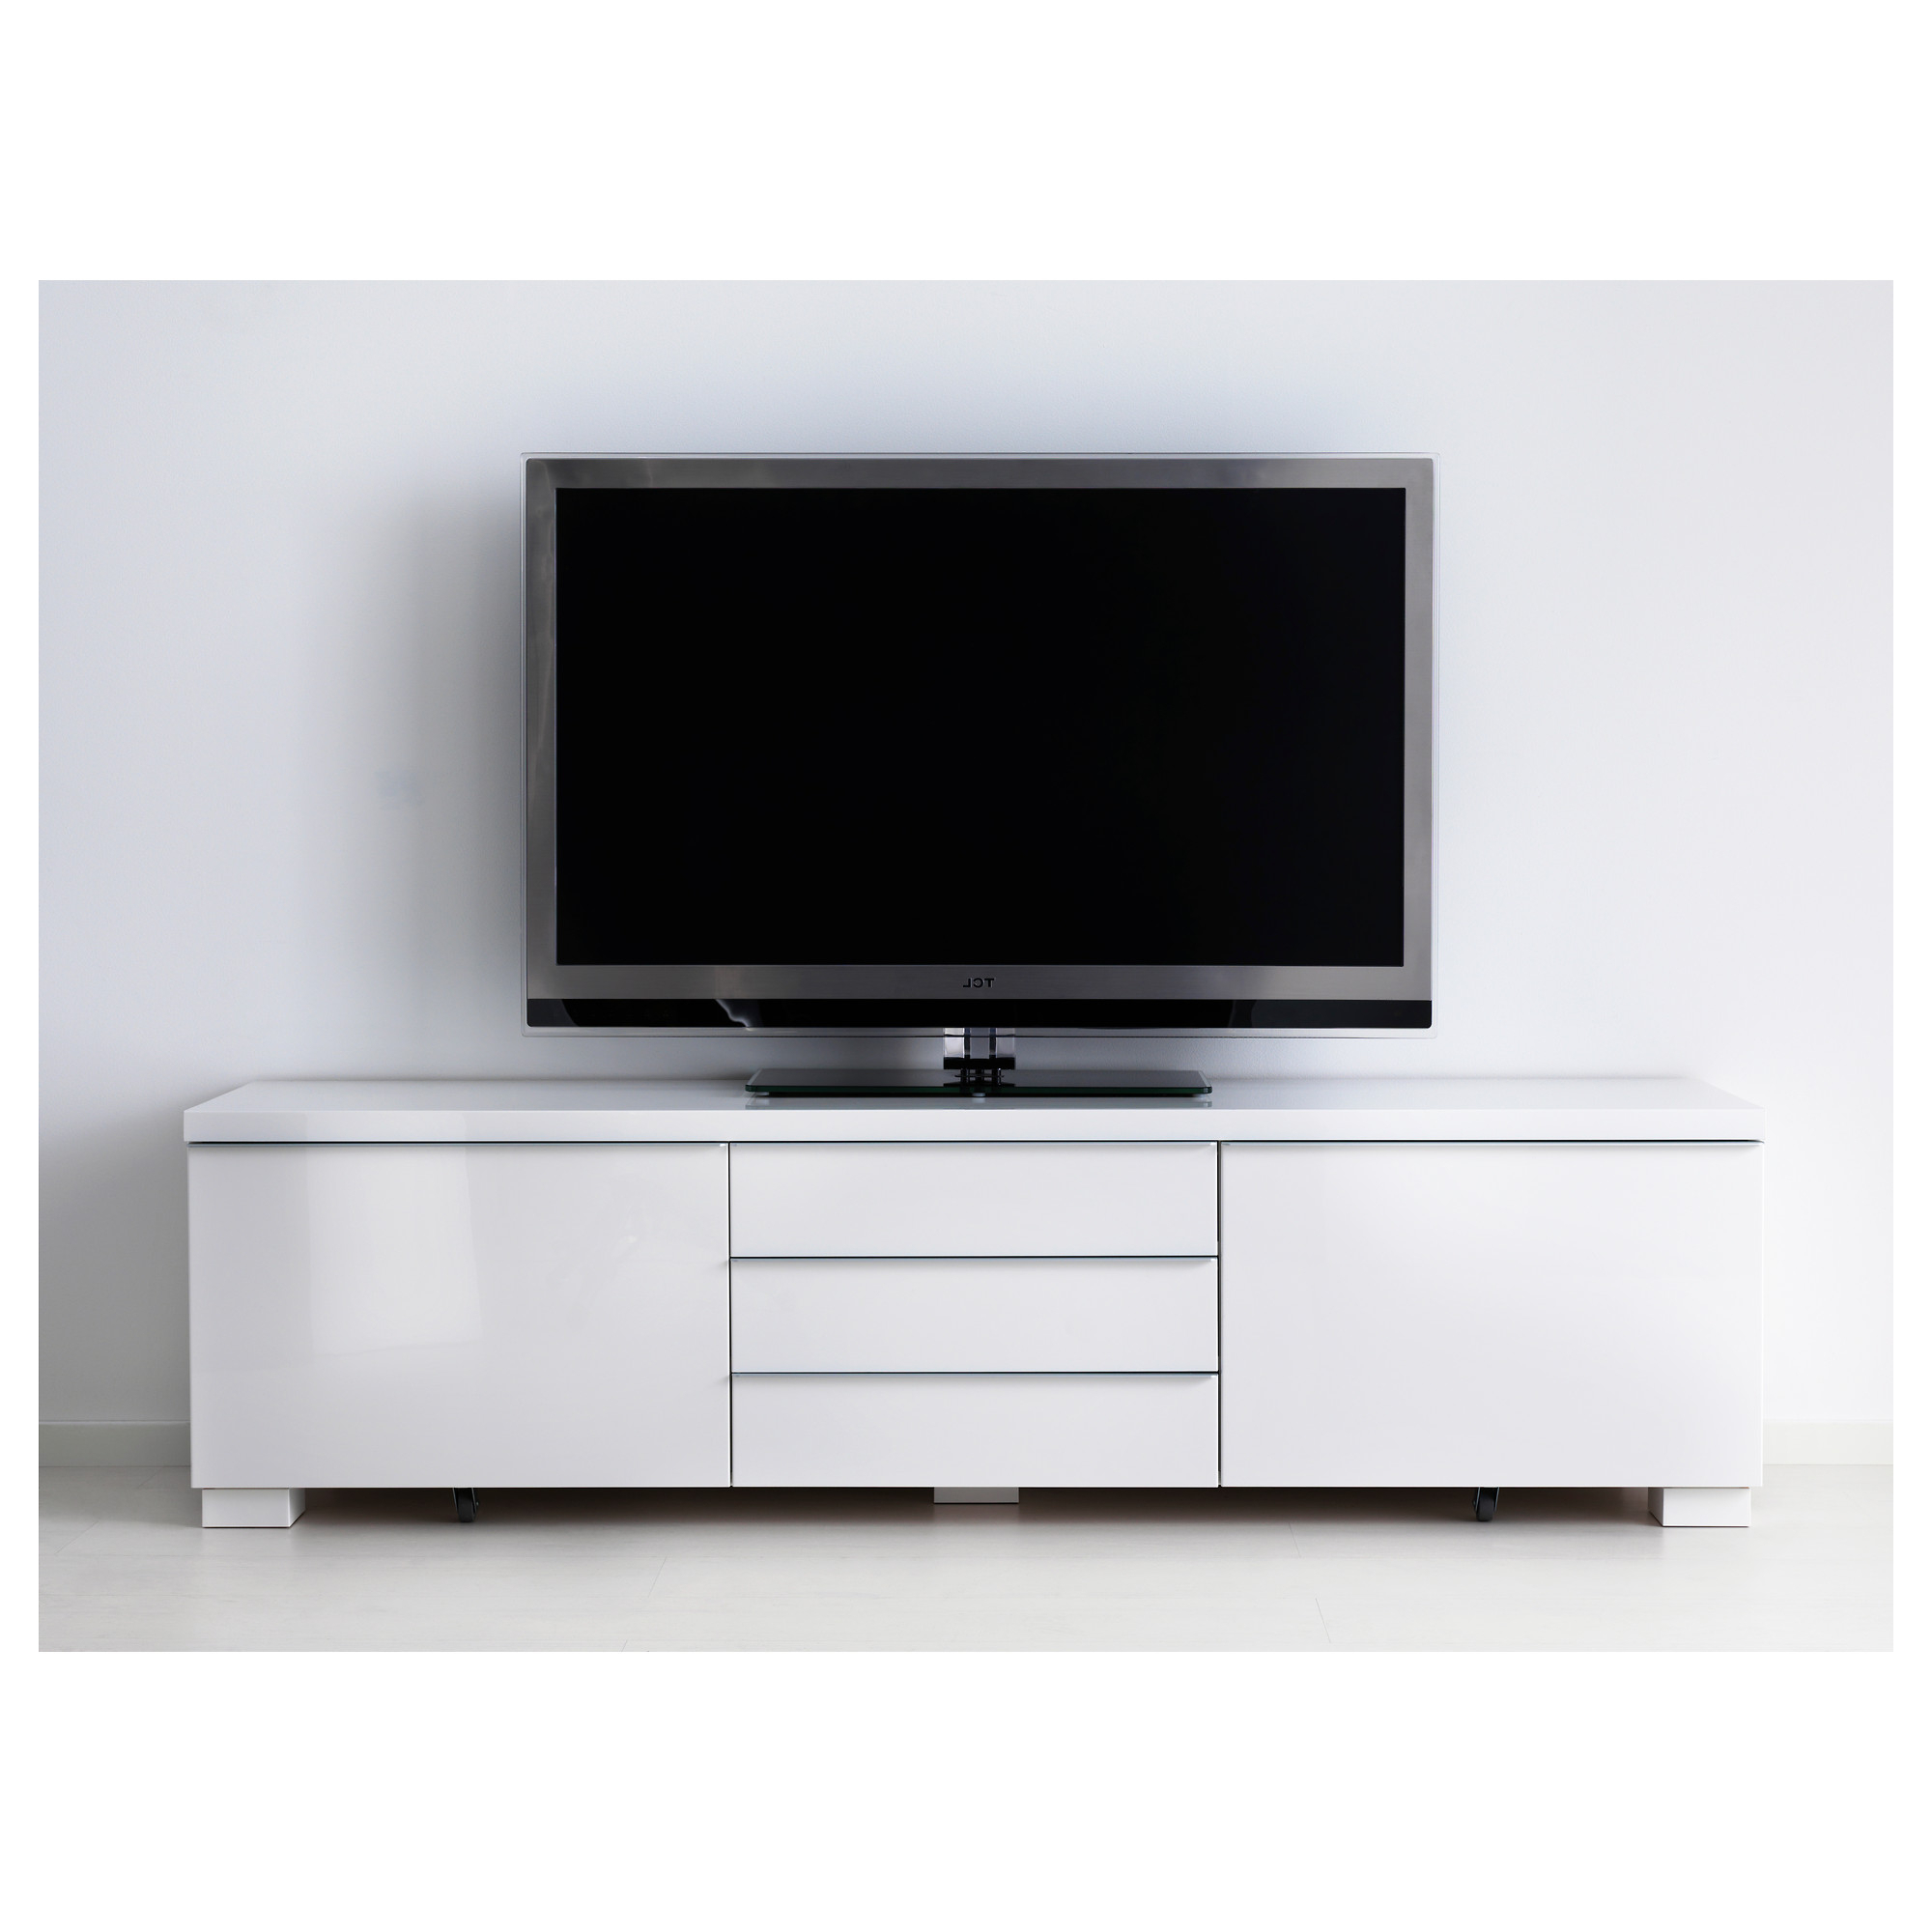 White Tv Cabinets – Image Cabinets And Shower Mandra Tavern For Most Popular Gloss White Tv Cabinets (View 20 of 20)